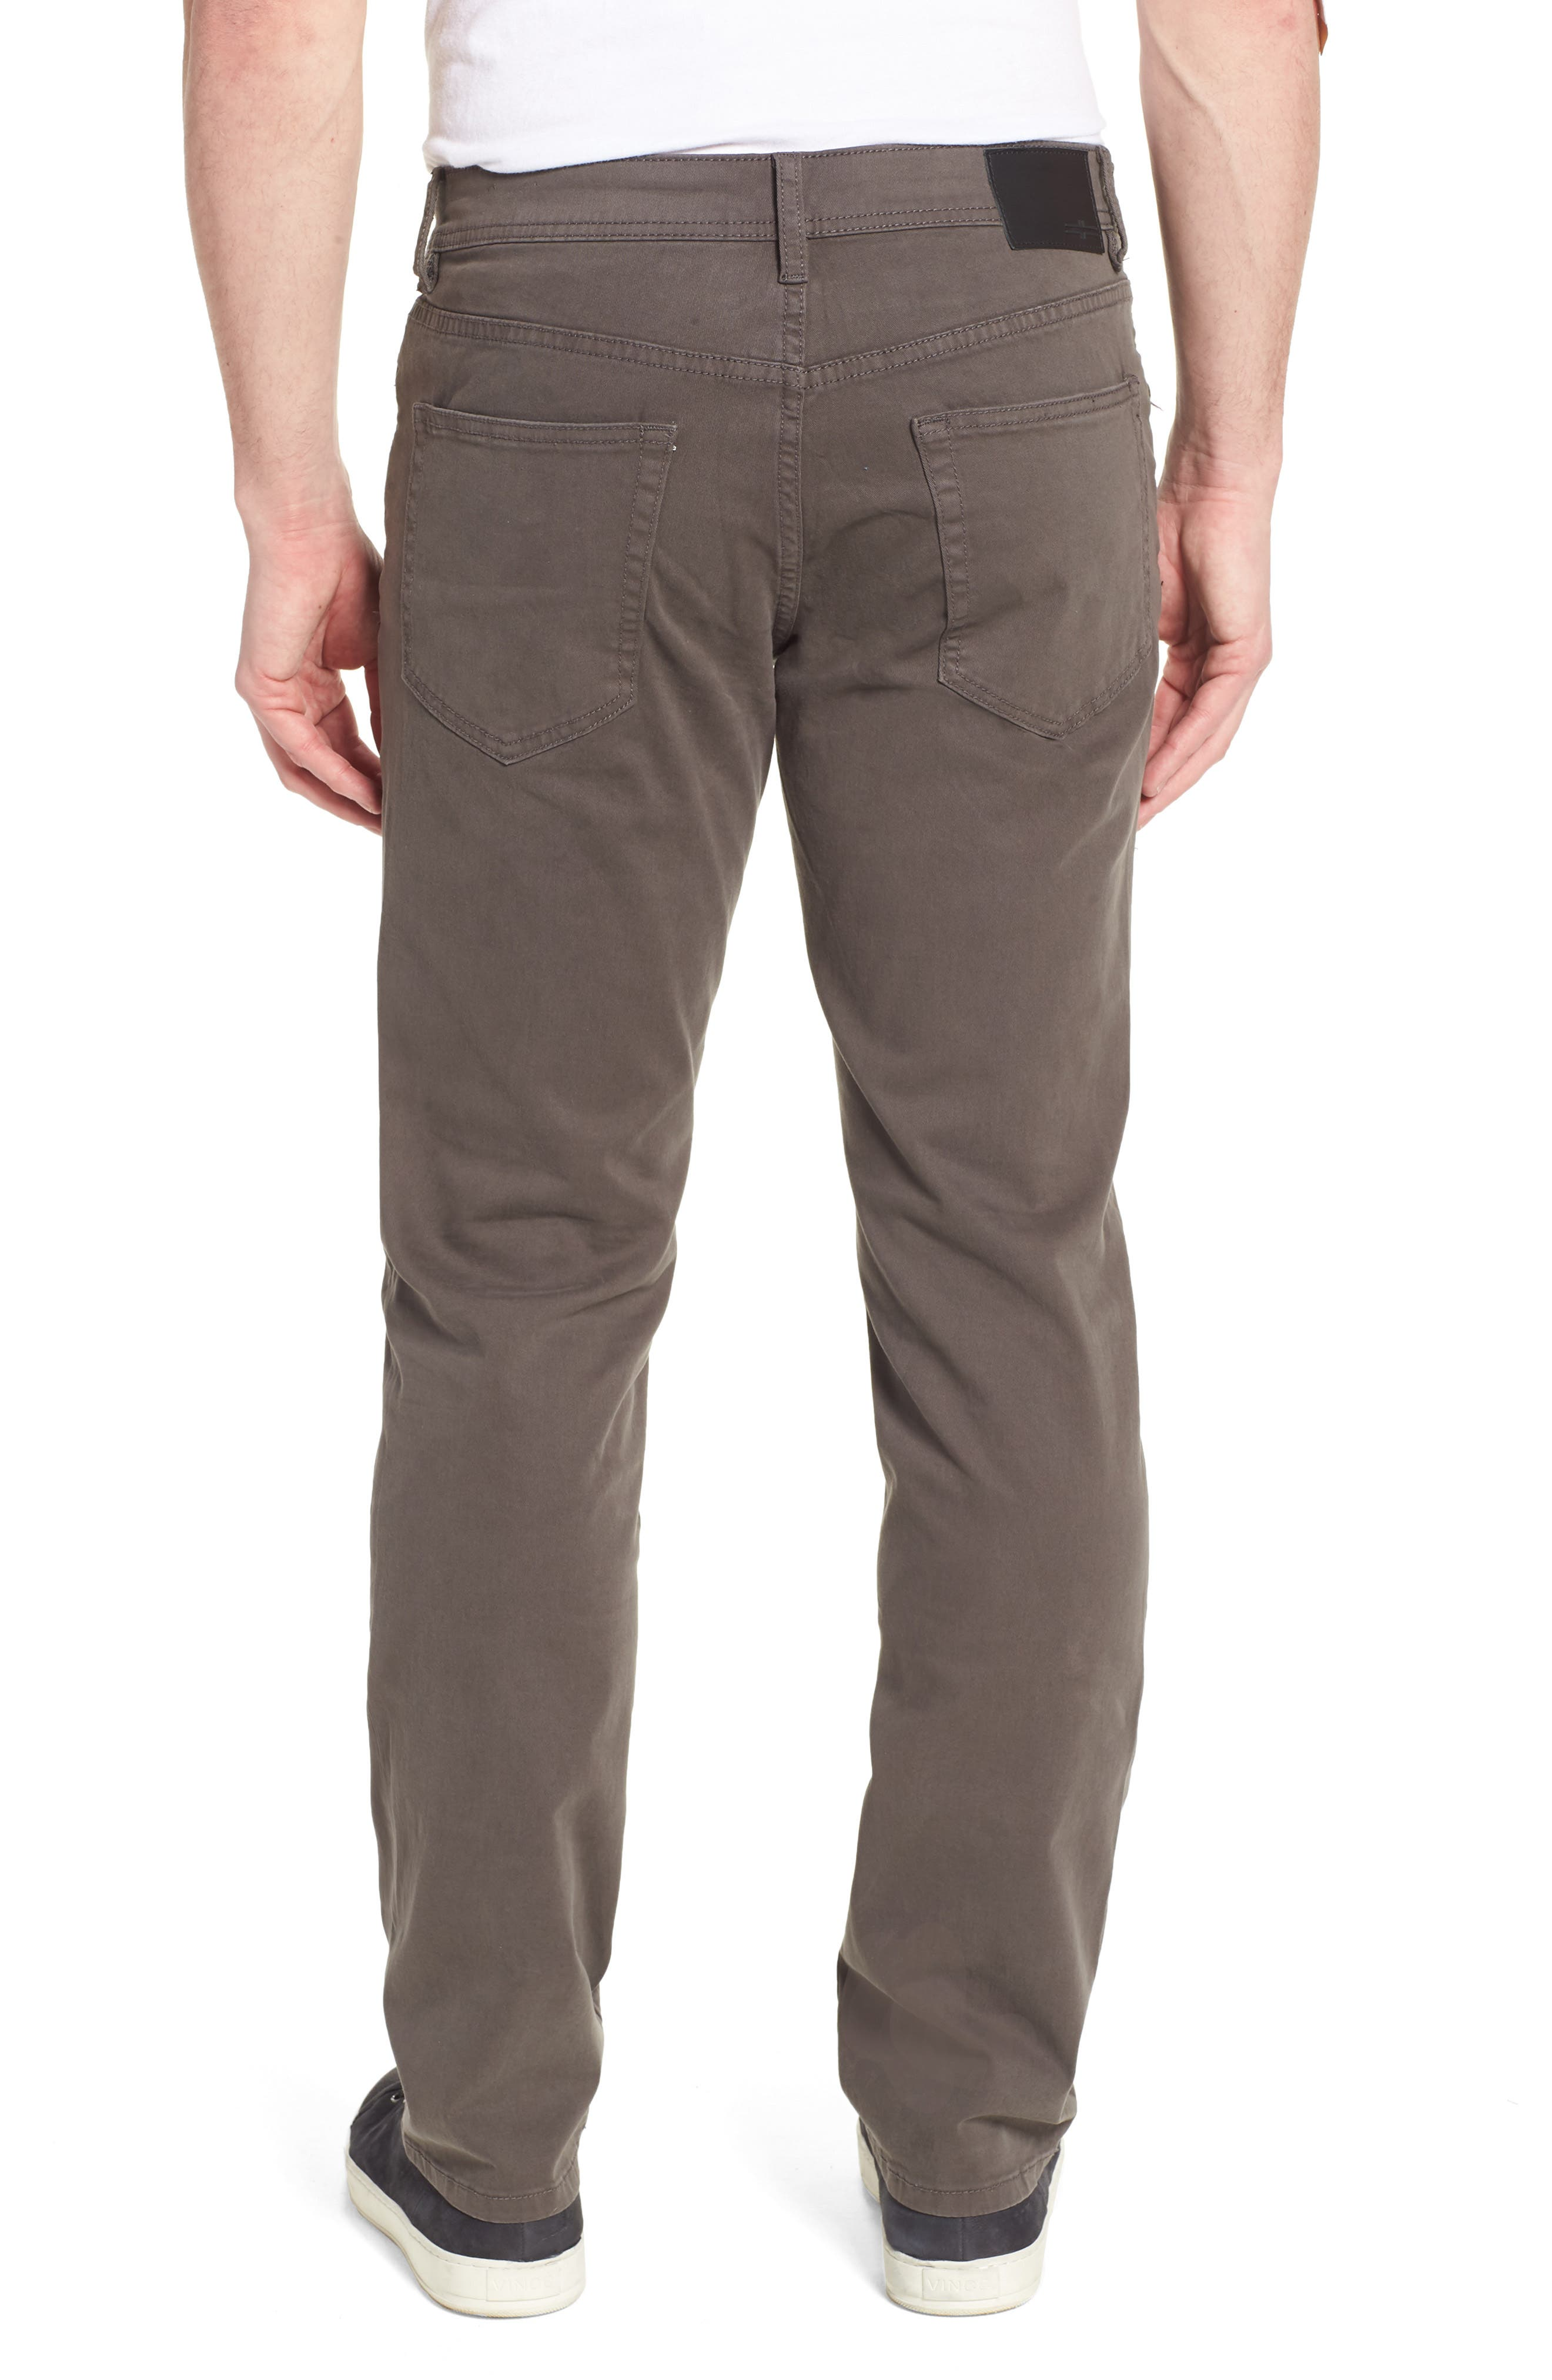 Jeans Co. Regent Relaxed Fit Jeans,                             Alternate thumbnail 2, color,                             DEEP EARTH